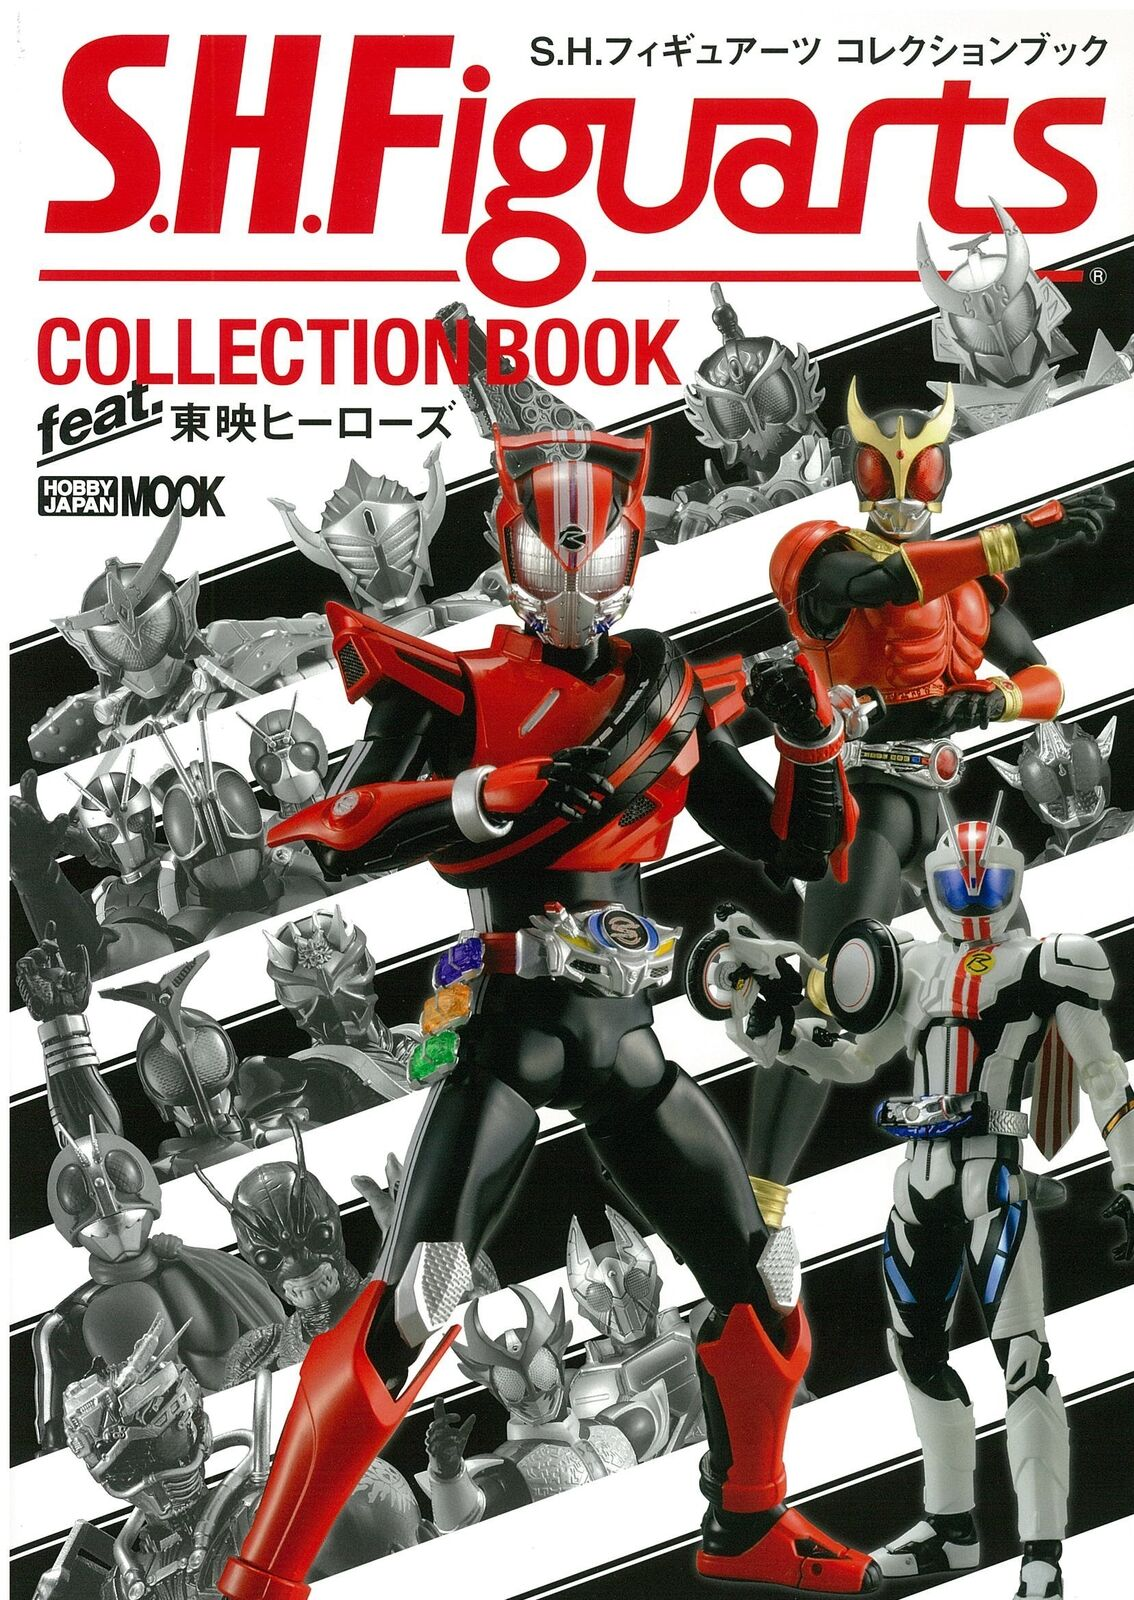 S.H. Figuarts Collection Book feat. Toei Heroes Japanese Figuarts Book